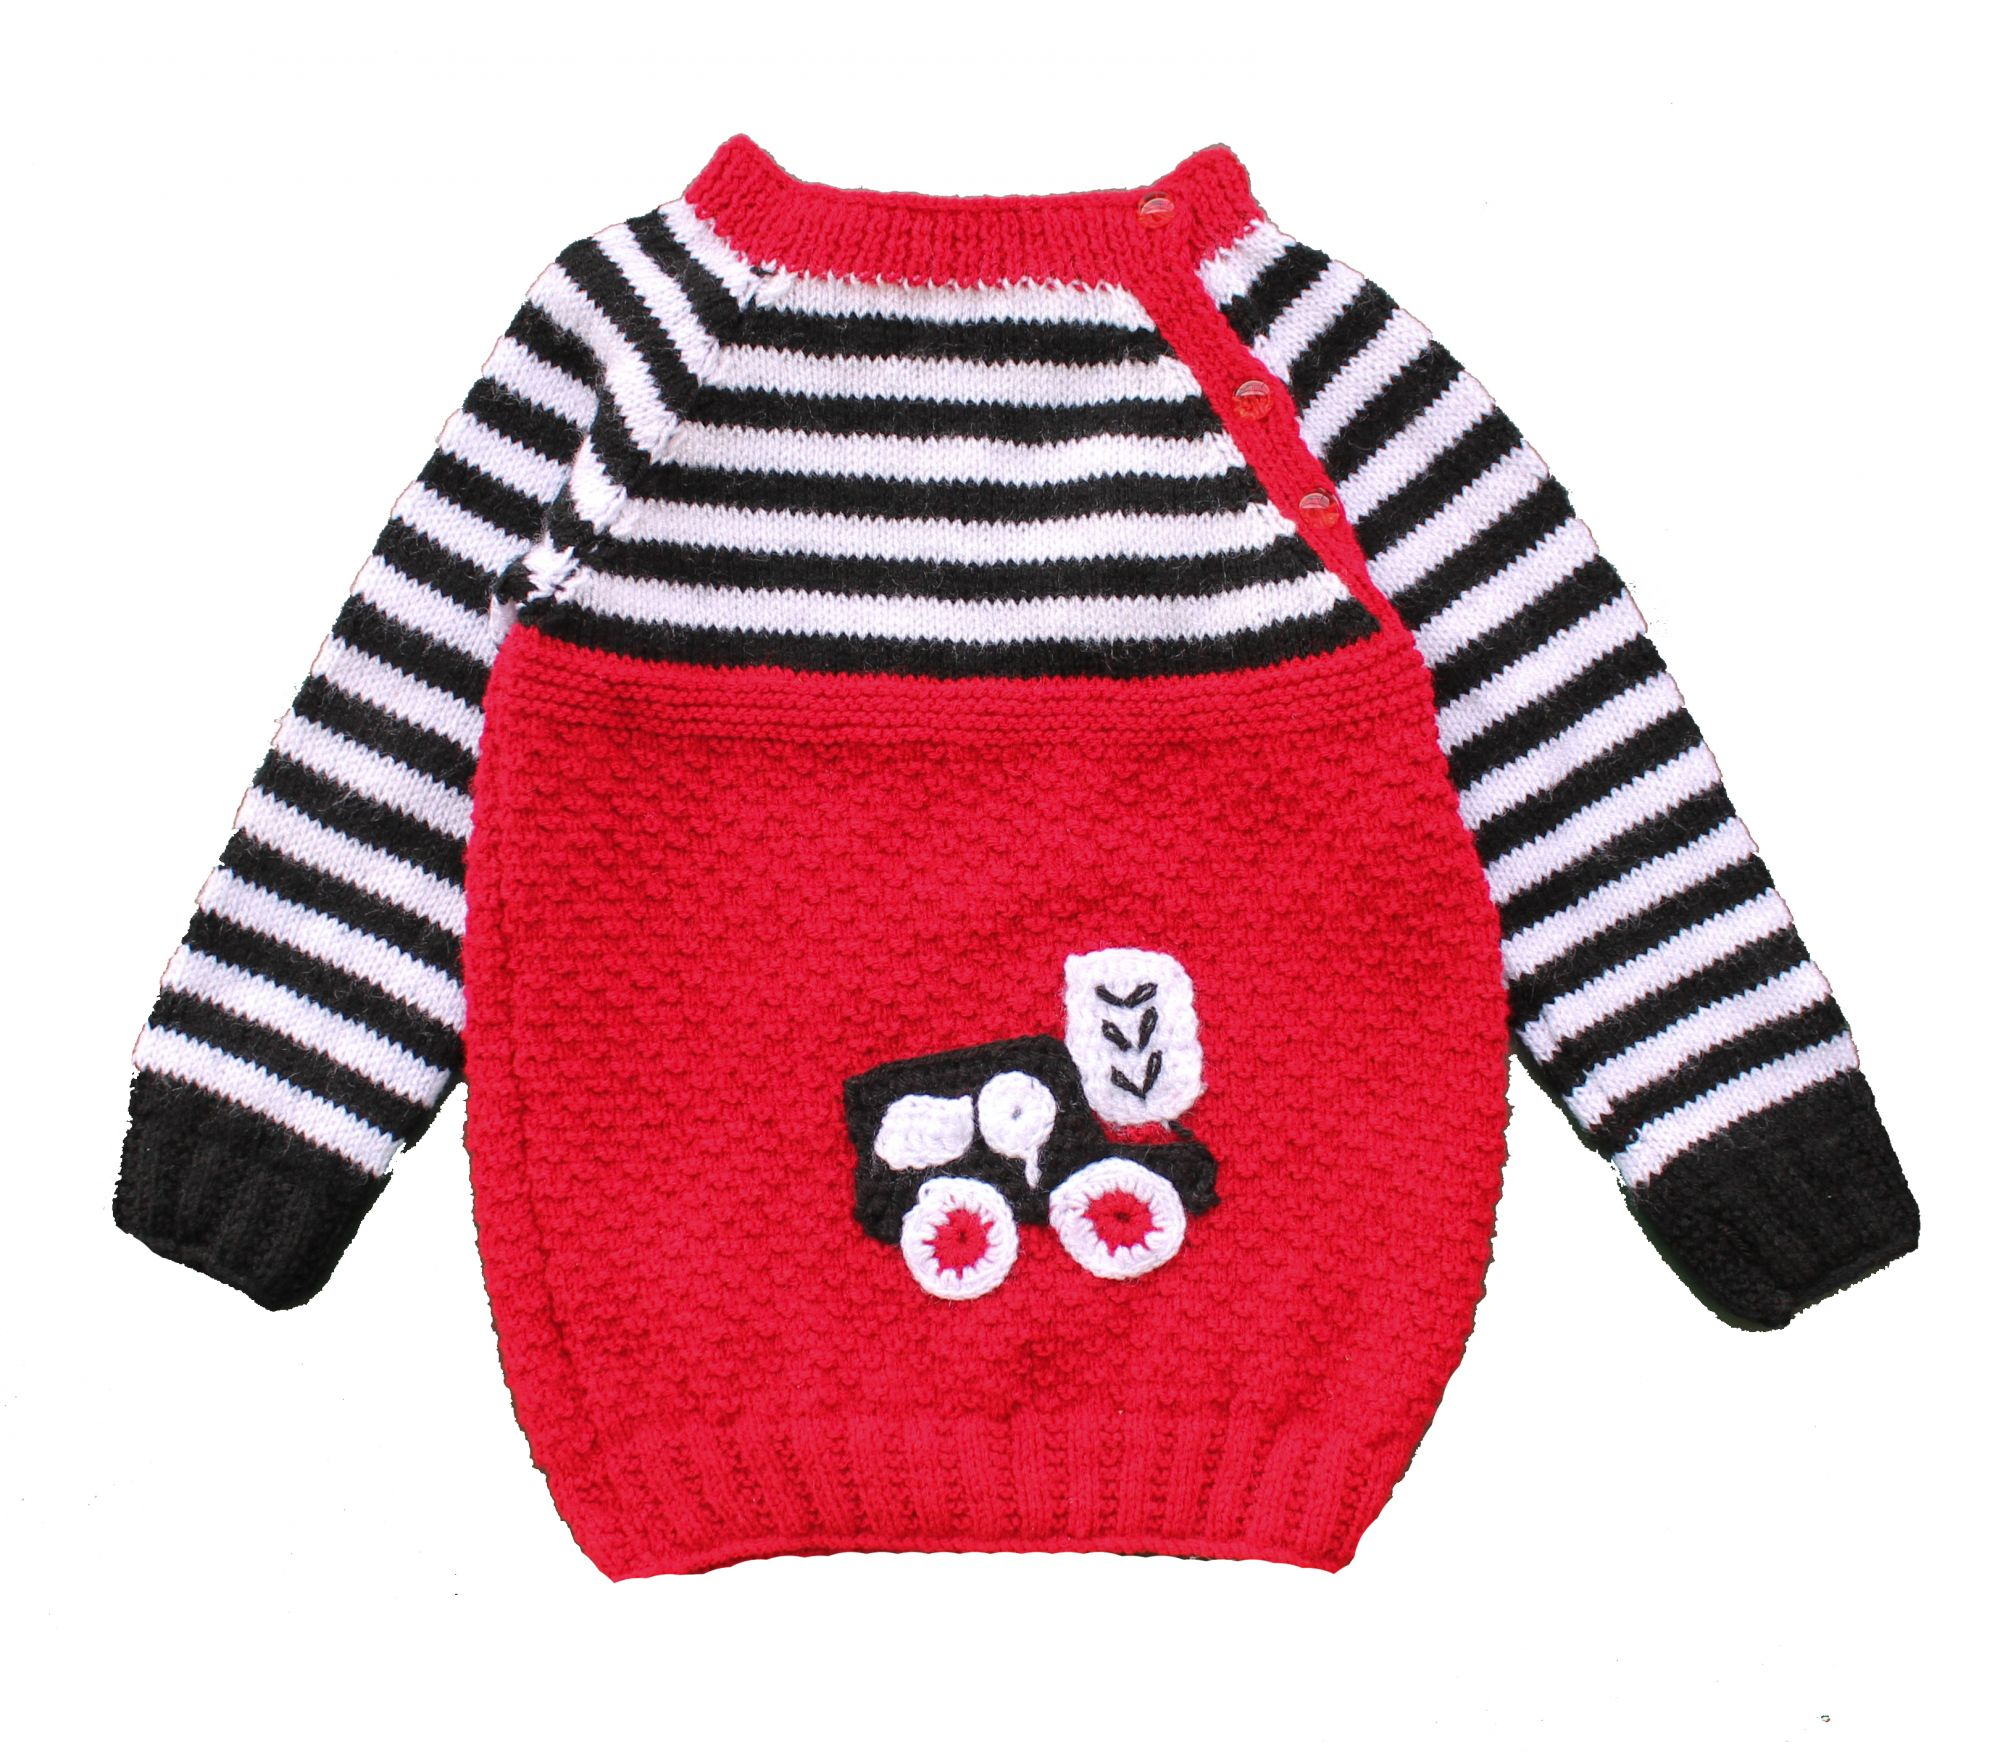 Woonie Handmade Red and White Striped Sweater for Kids